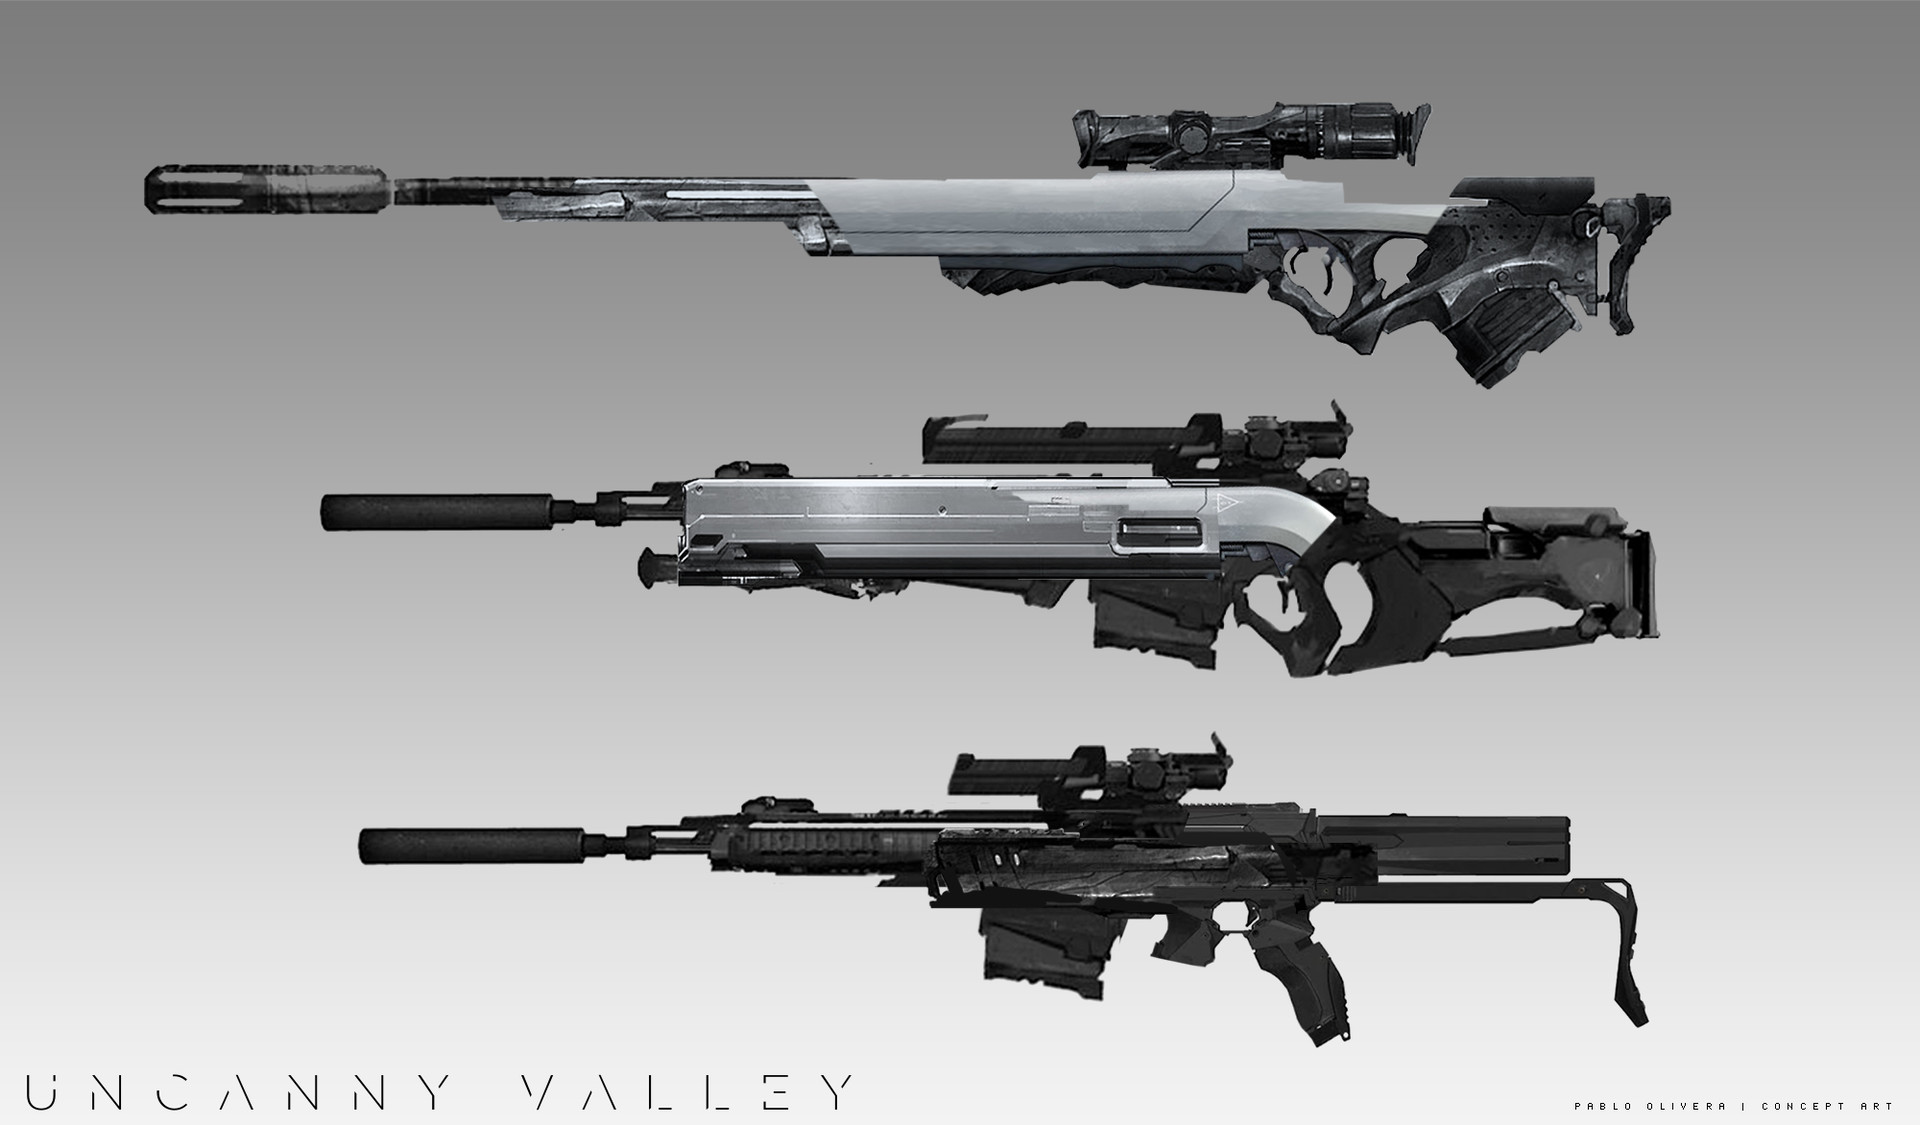 Pablo olivera uncanny valley weapons todas 04